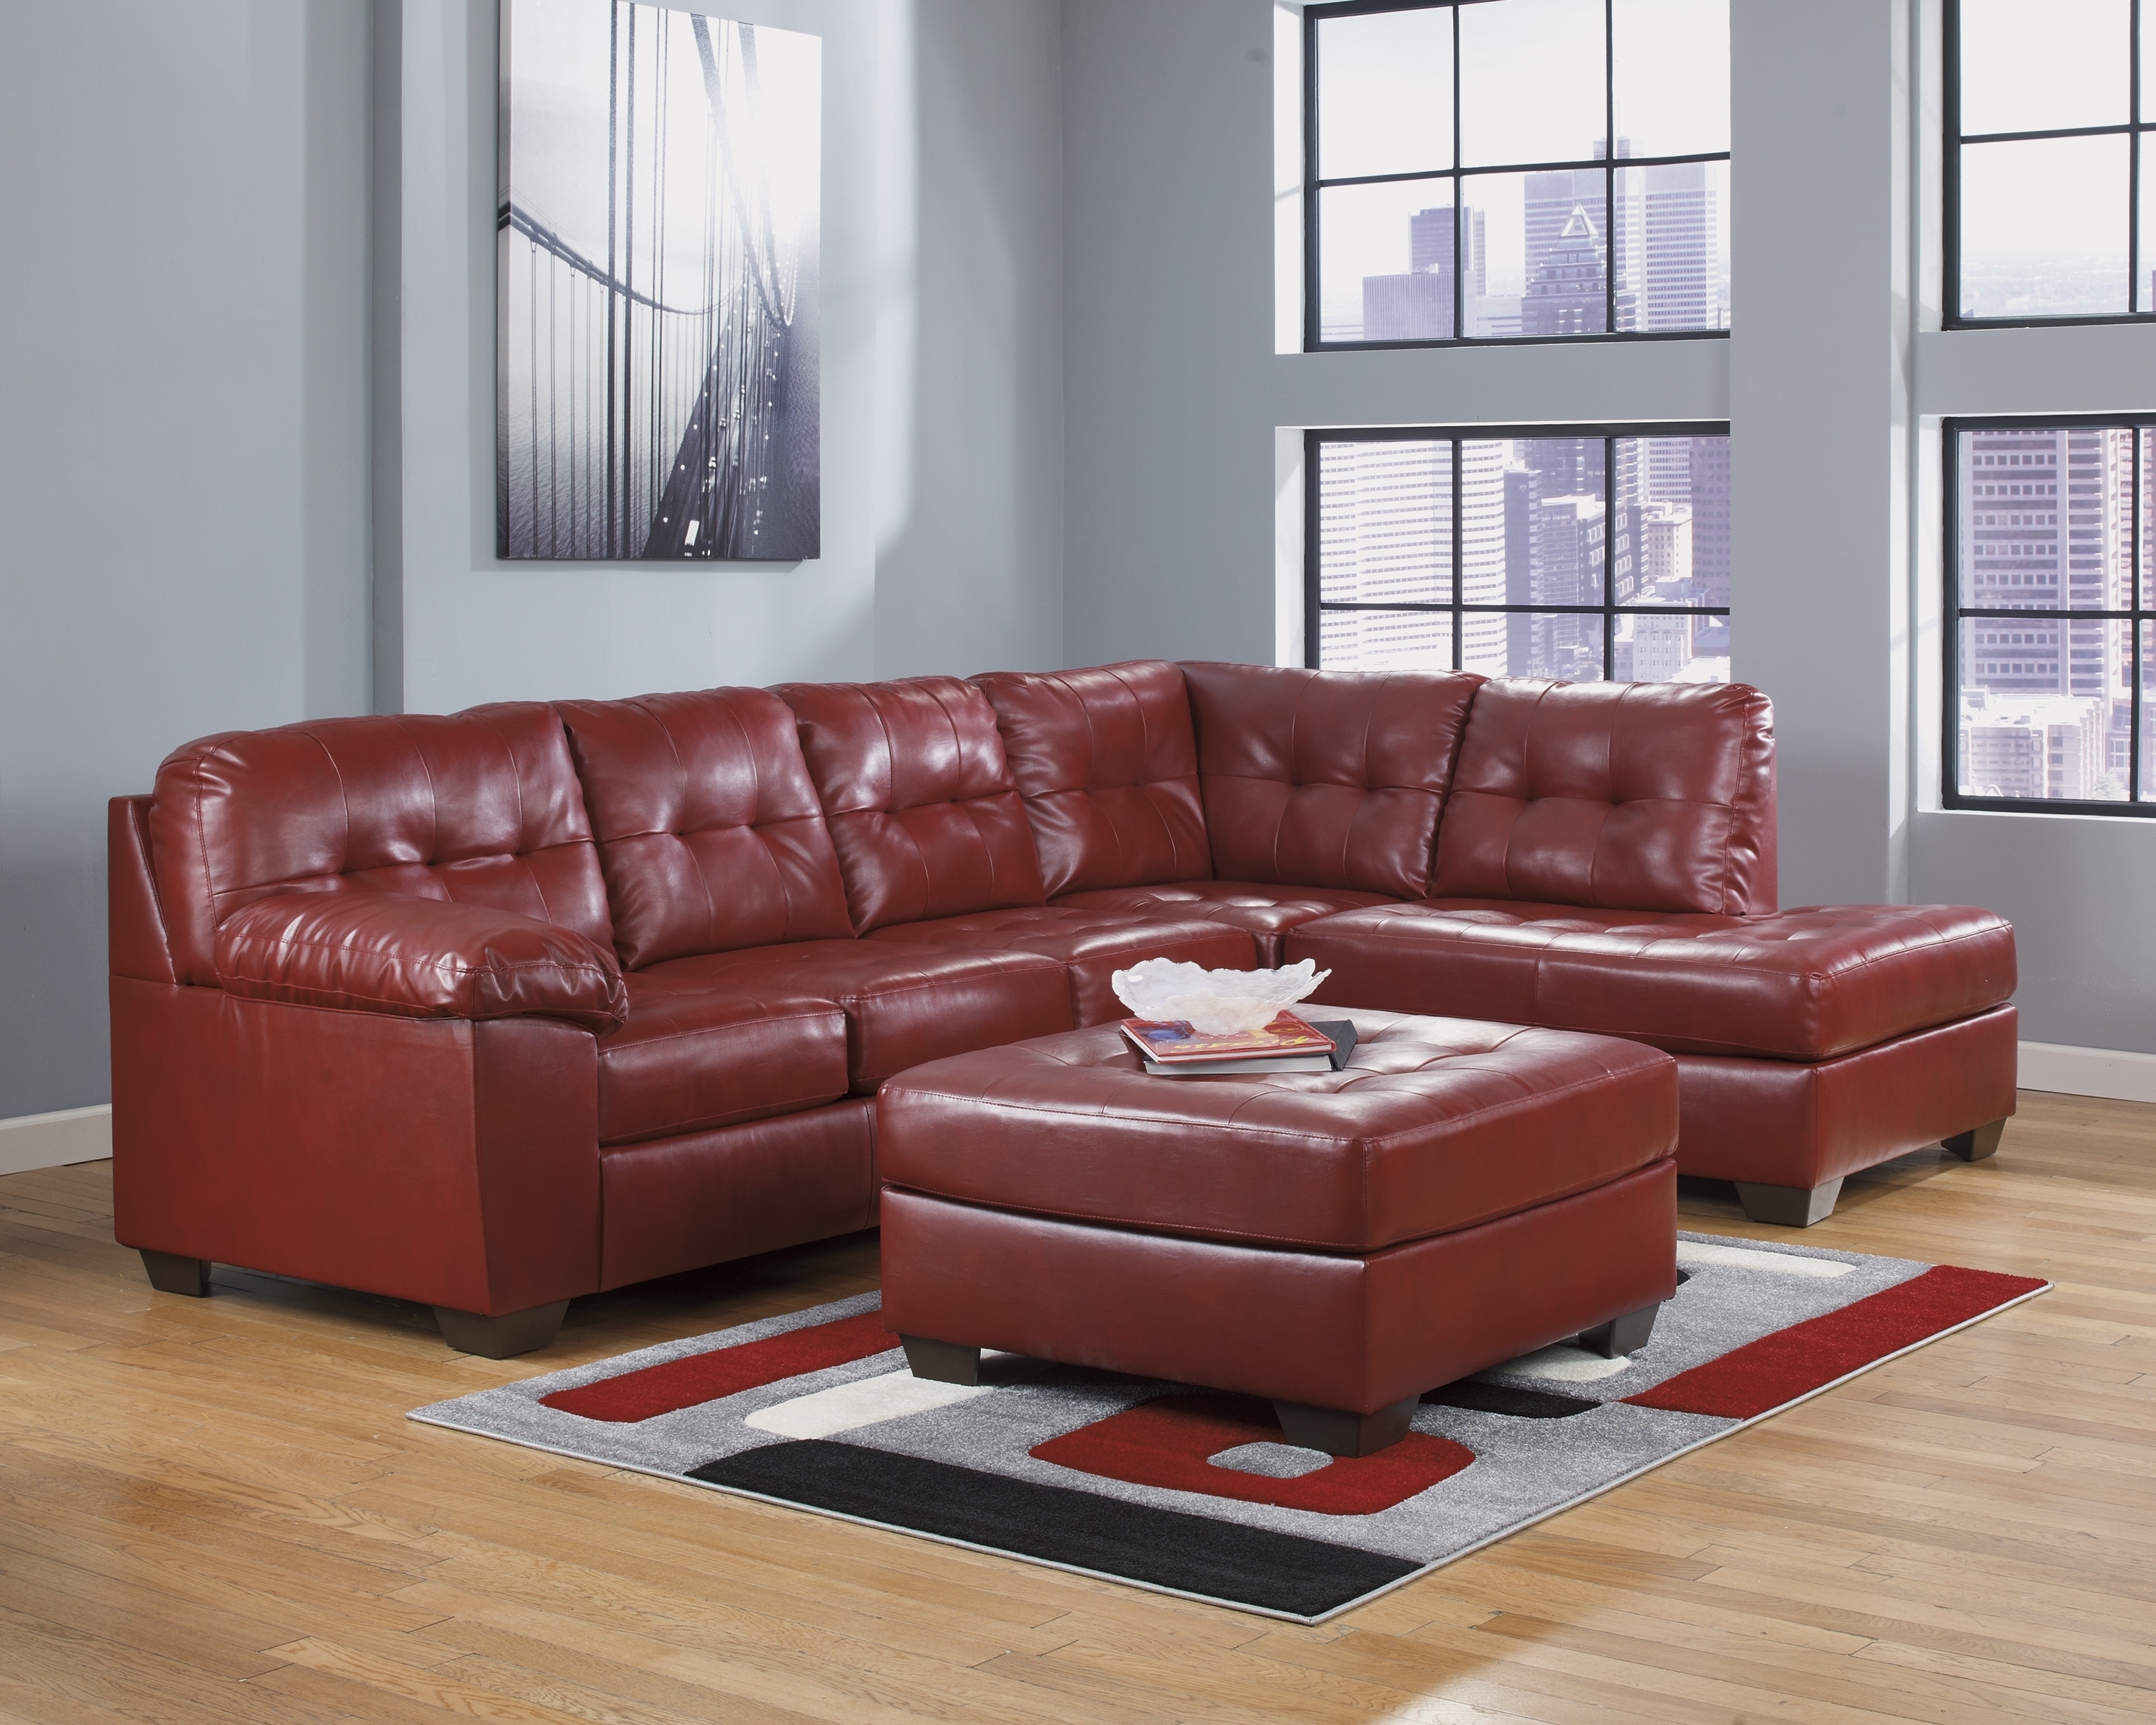 Newest Furniture: Ashley Furniture Sectional Sofas For Elegant Interior In Red Leather Sectional Sofas With Ottoman (View 12 of 20)